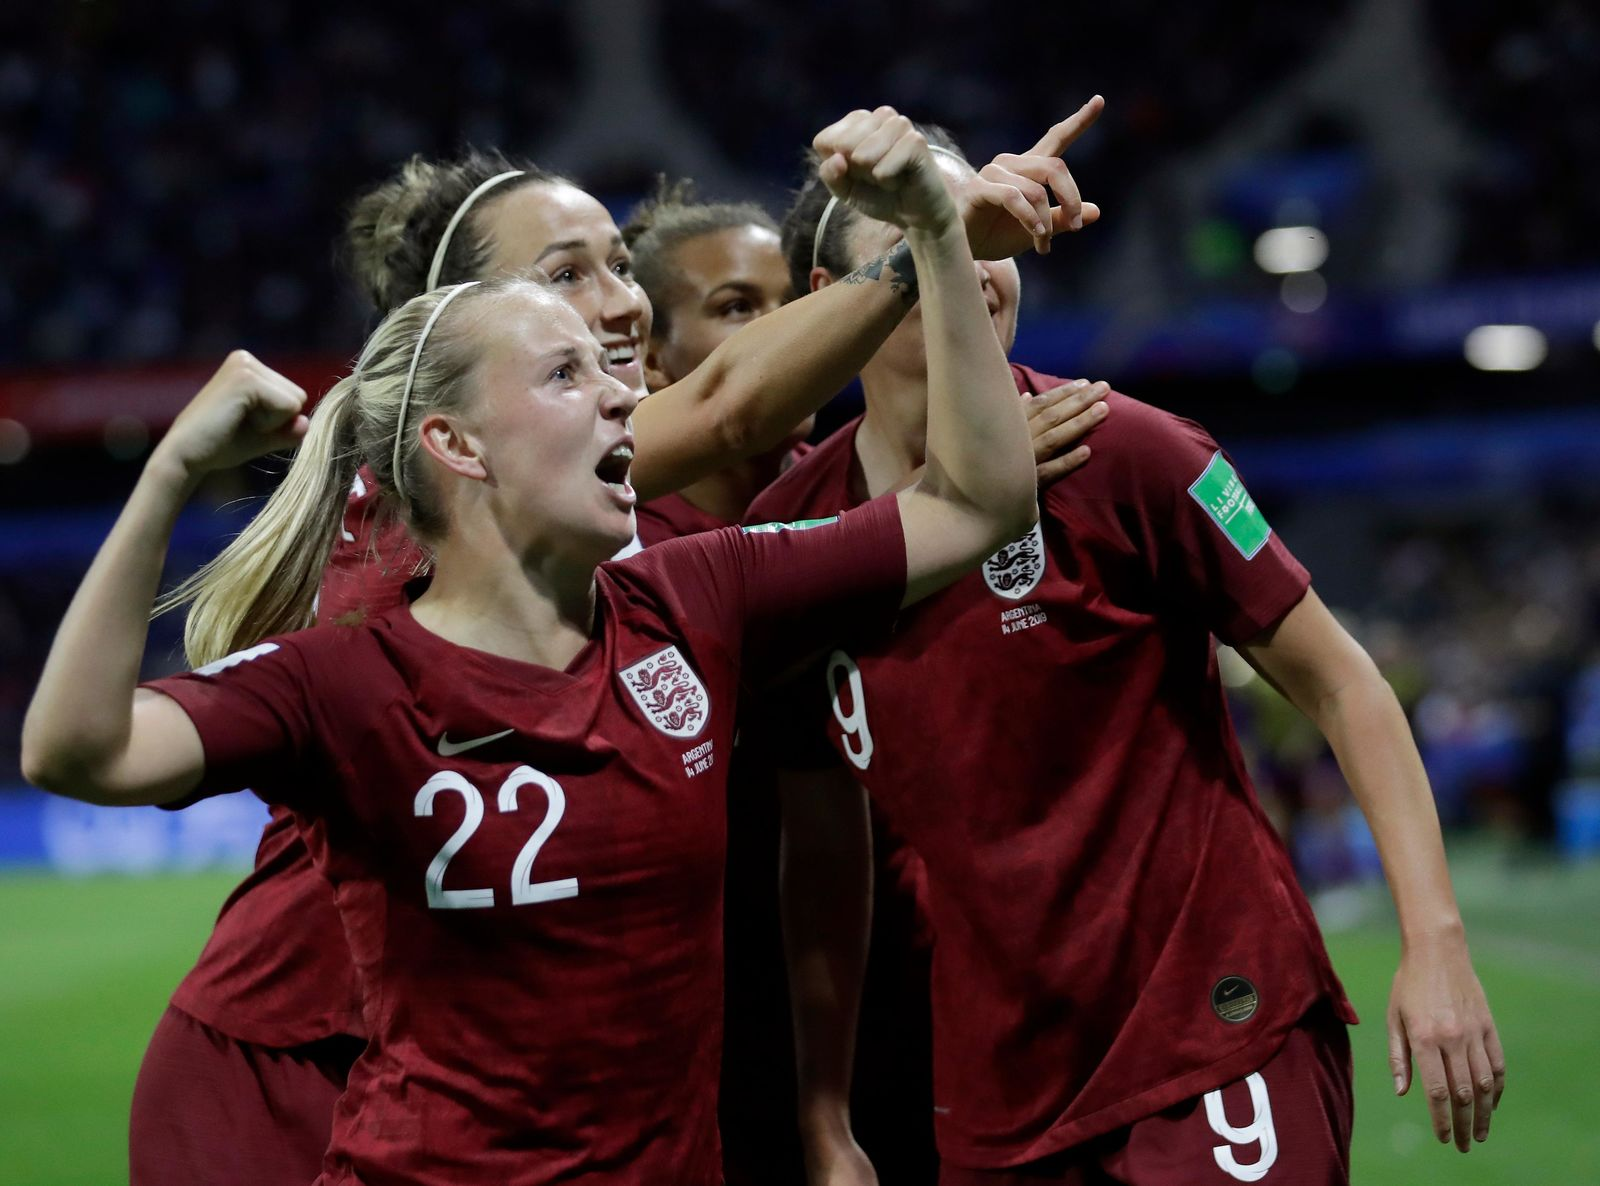 England's Beth Mead, front, celebrates after her teammate Jodie Taylor scored the opening goal during the Women's World Cup Group D soccer match between England and Argentina at the Stade Oceane in Le Havre, France, Friday, June 14, 2019. (AP Photo/Alessandra Tarantino)